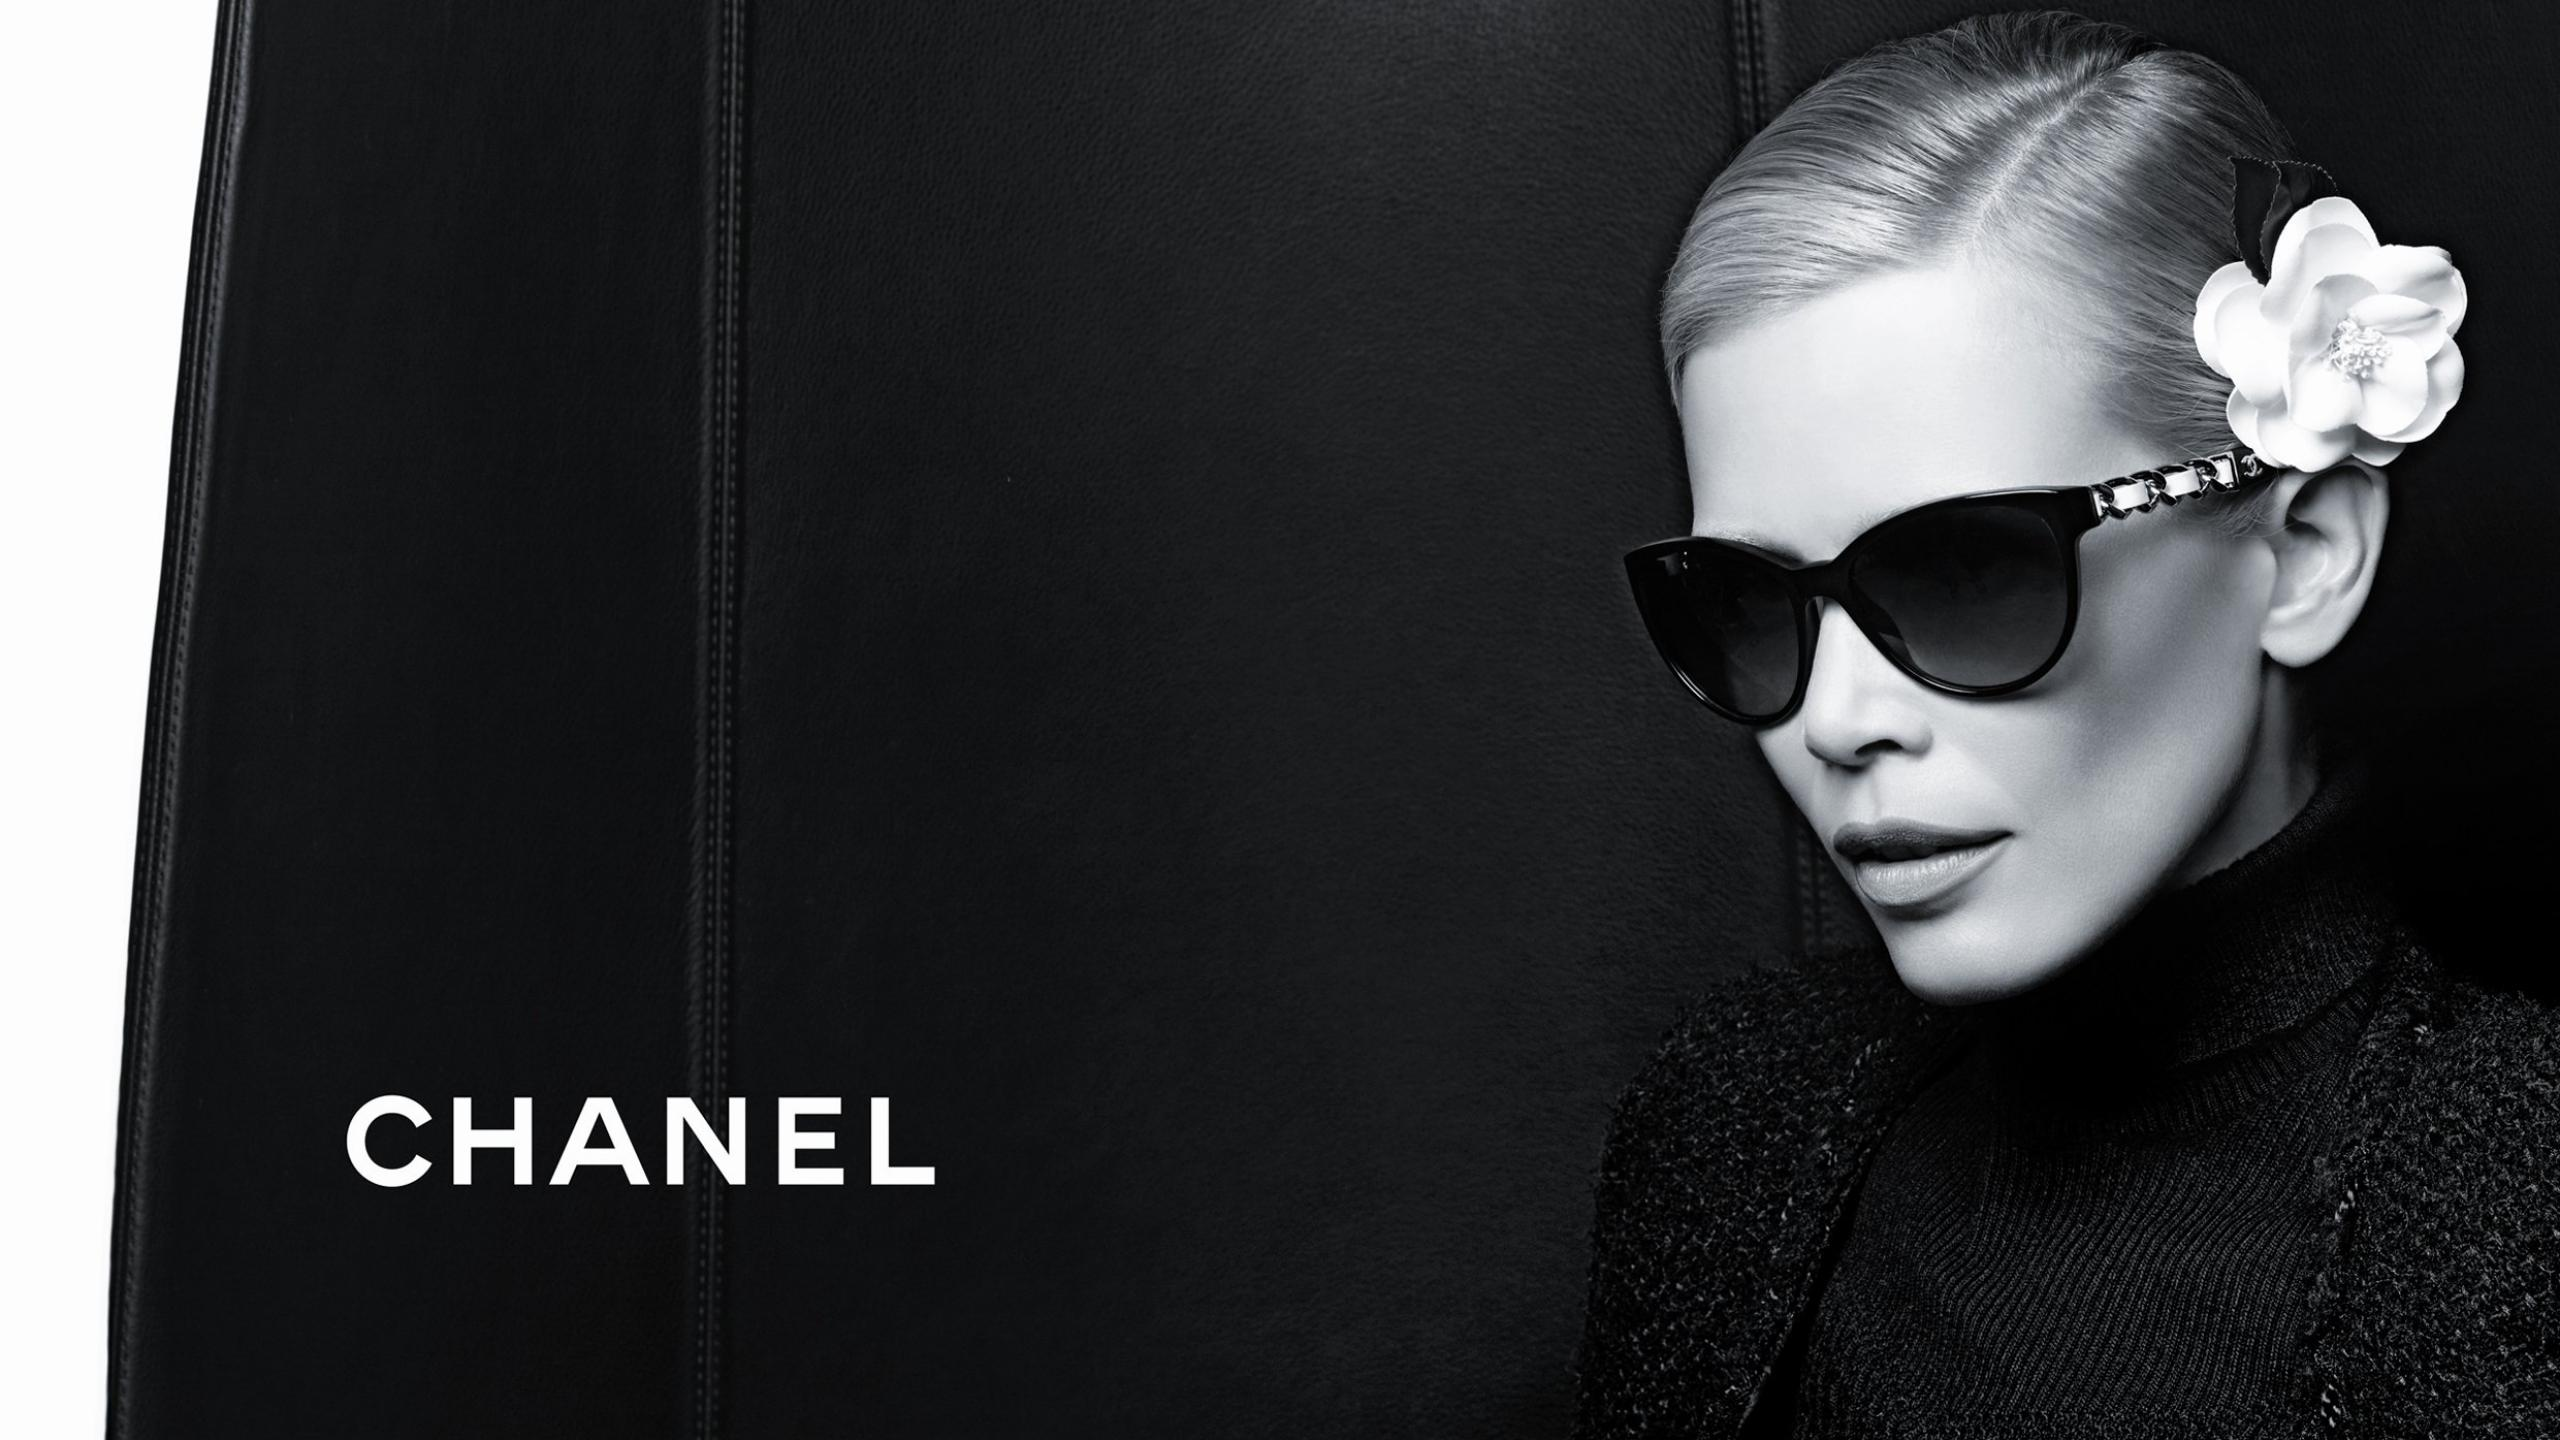 chanel wallpapers laptop